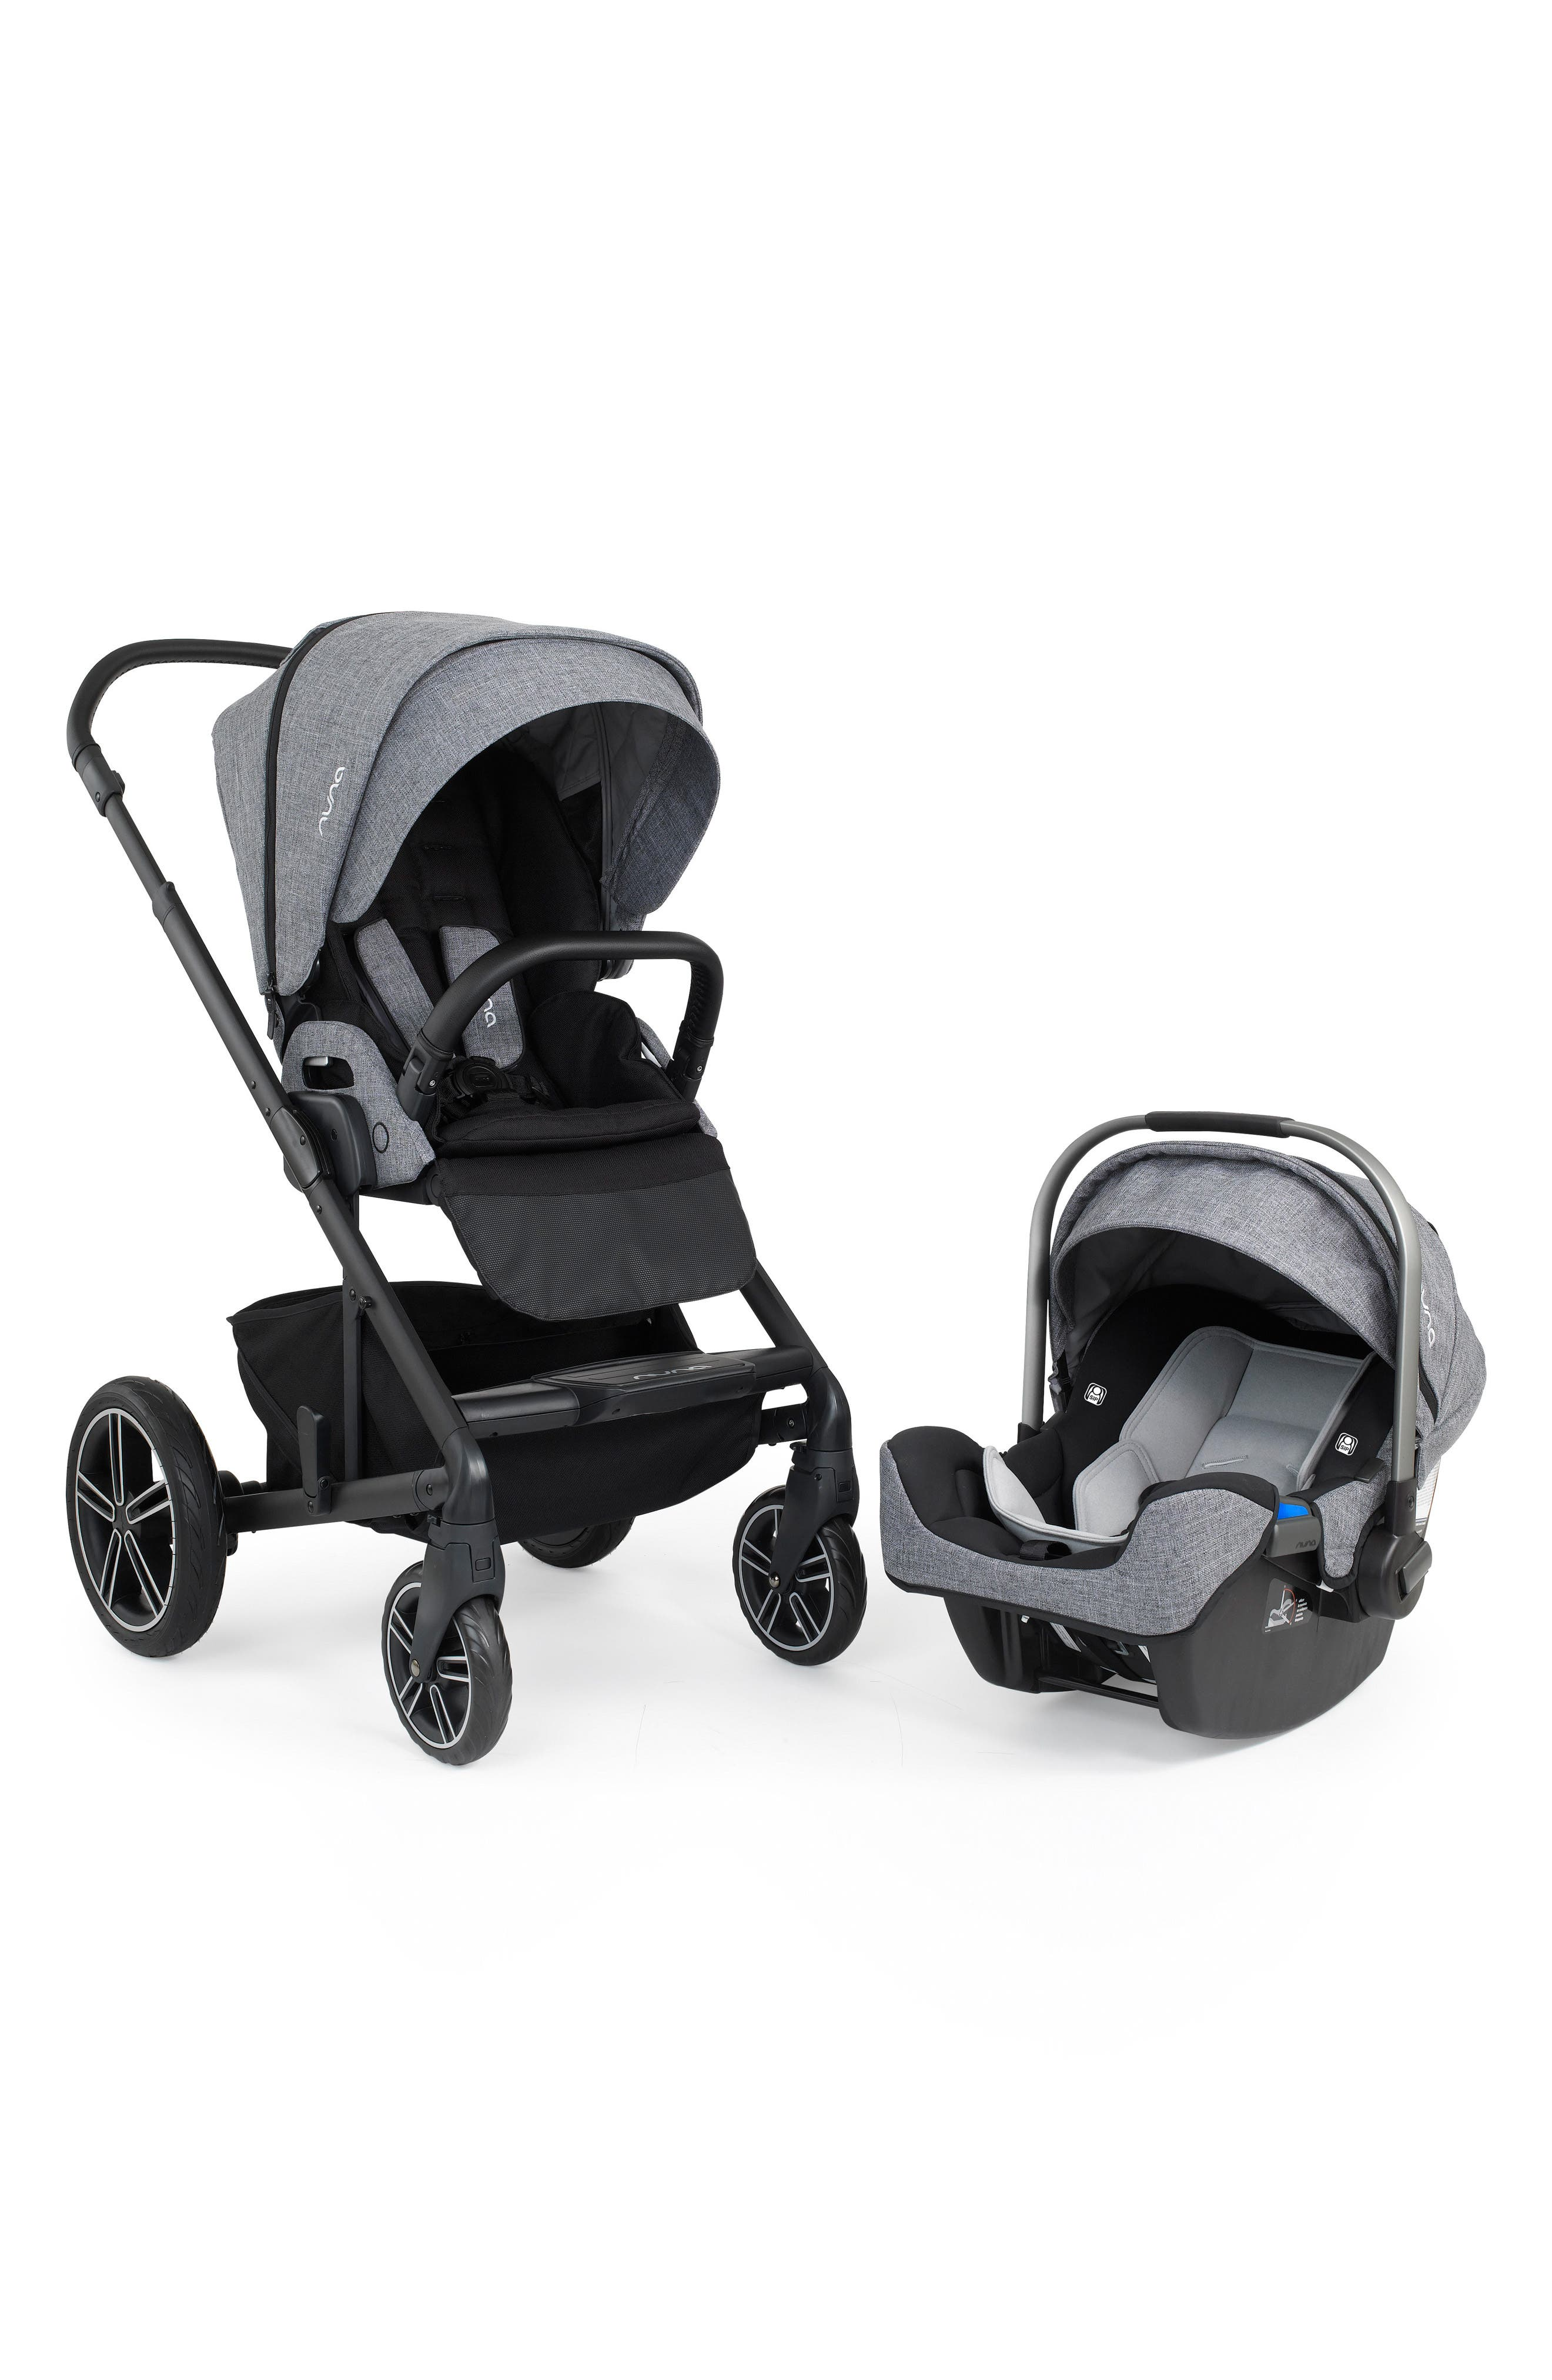 MIXX<sup>™</sup> 2 Stroller System & PIPA<sup>™</sup> Car Seat Set,                         Main,                         color, 020